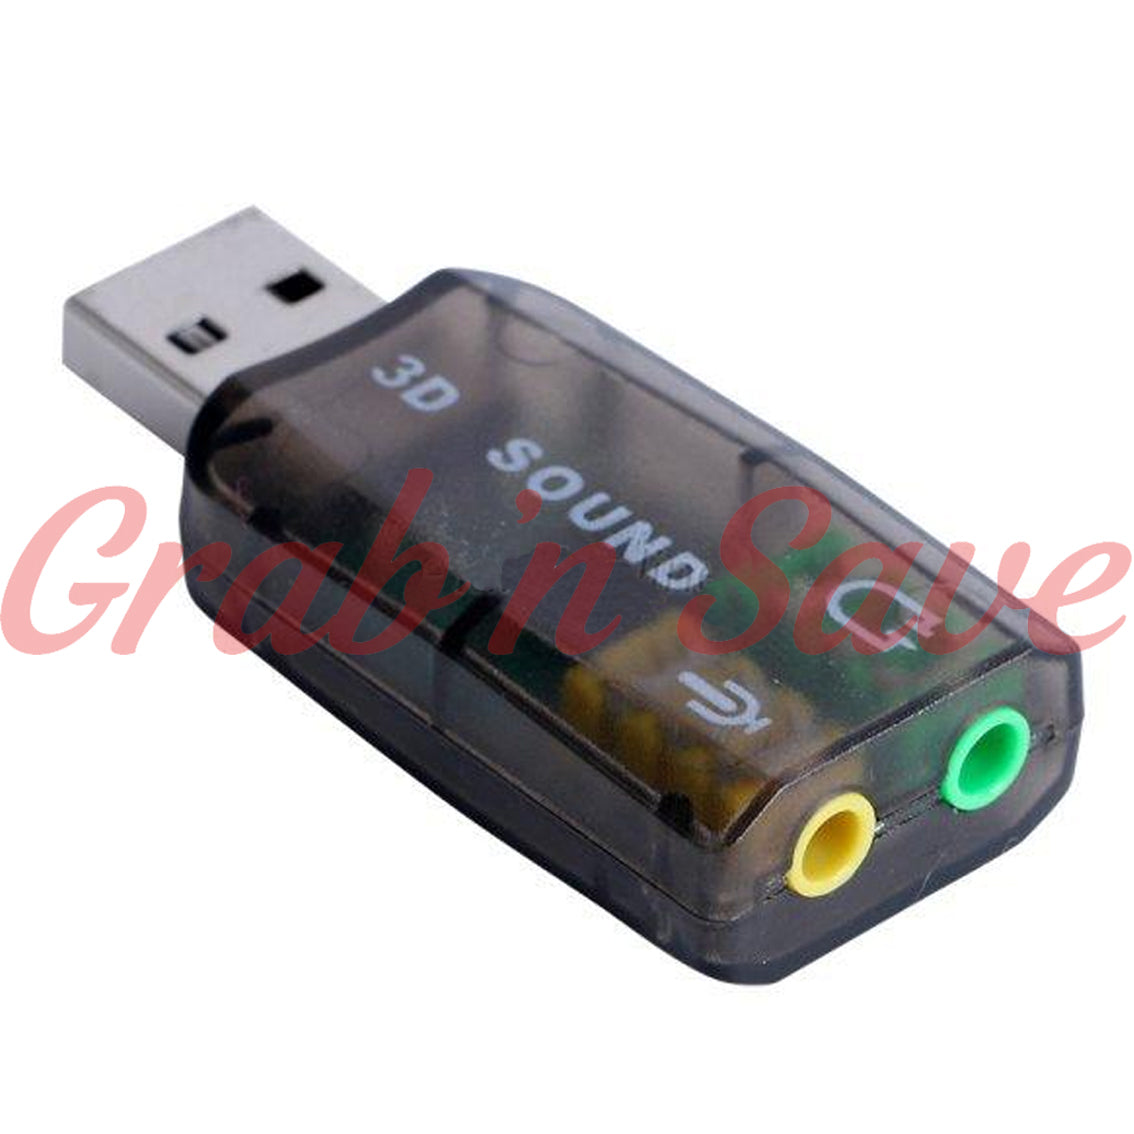 Sound Card, Computer Sound Card, USB Sound Card